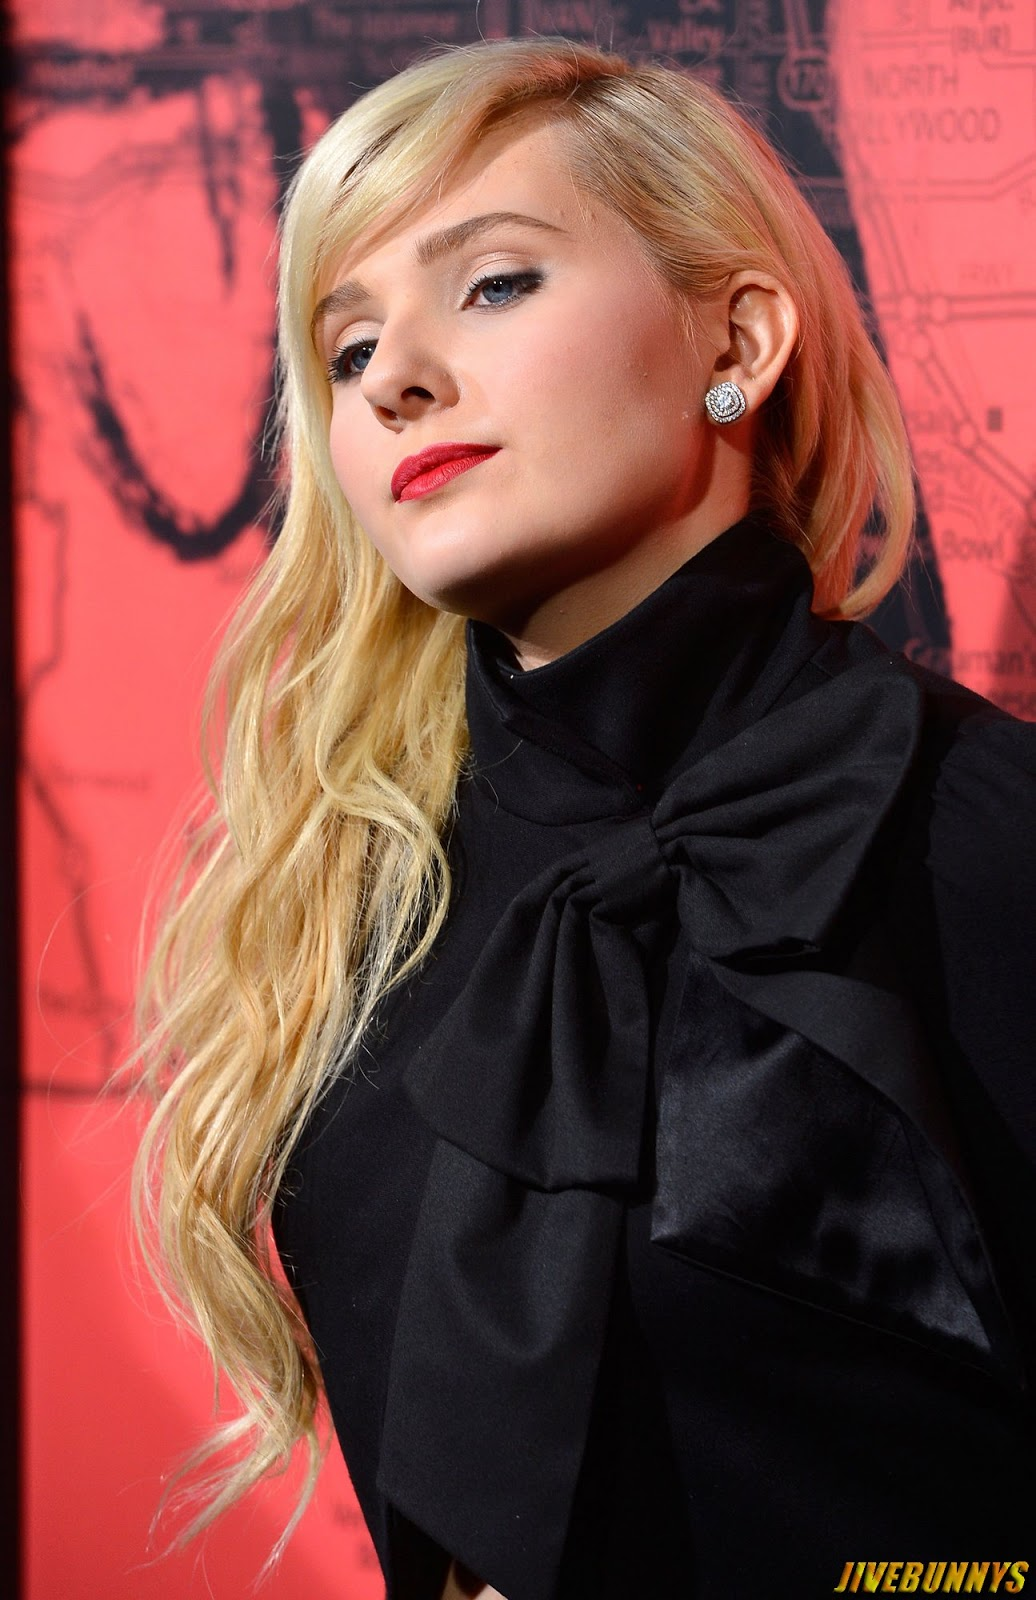 Abigail breslin sexy photos full nack top golden hair